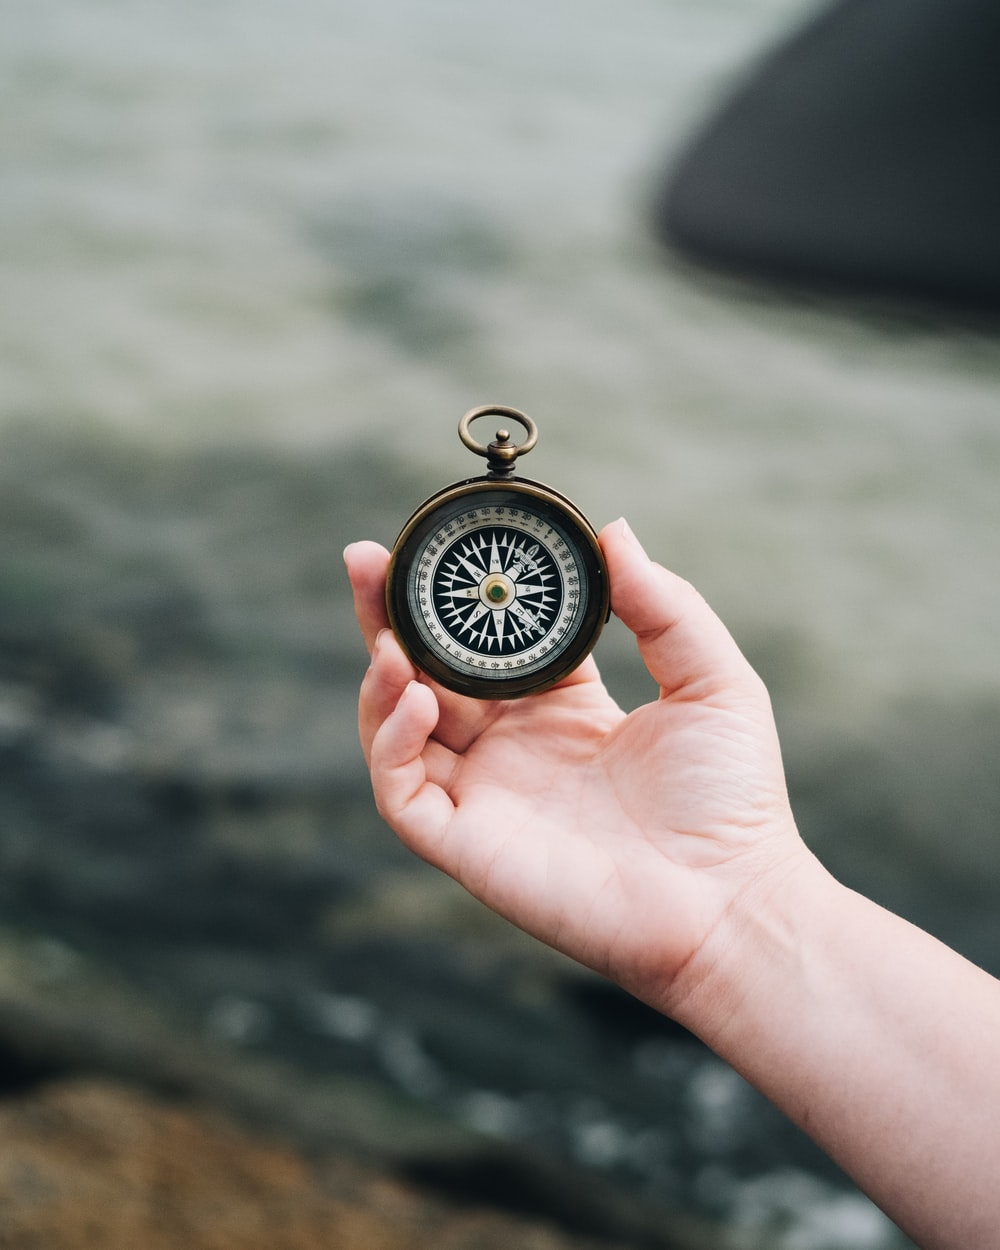 person holding white and black compass